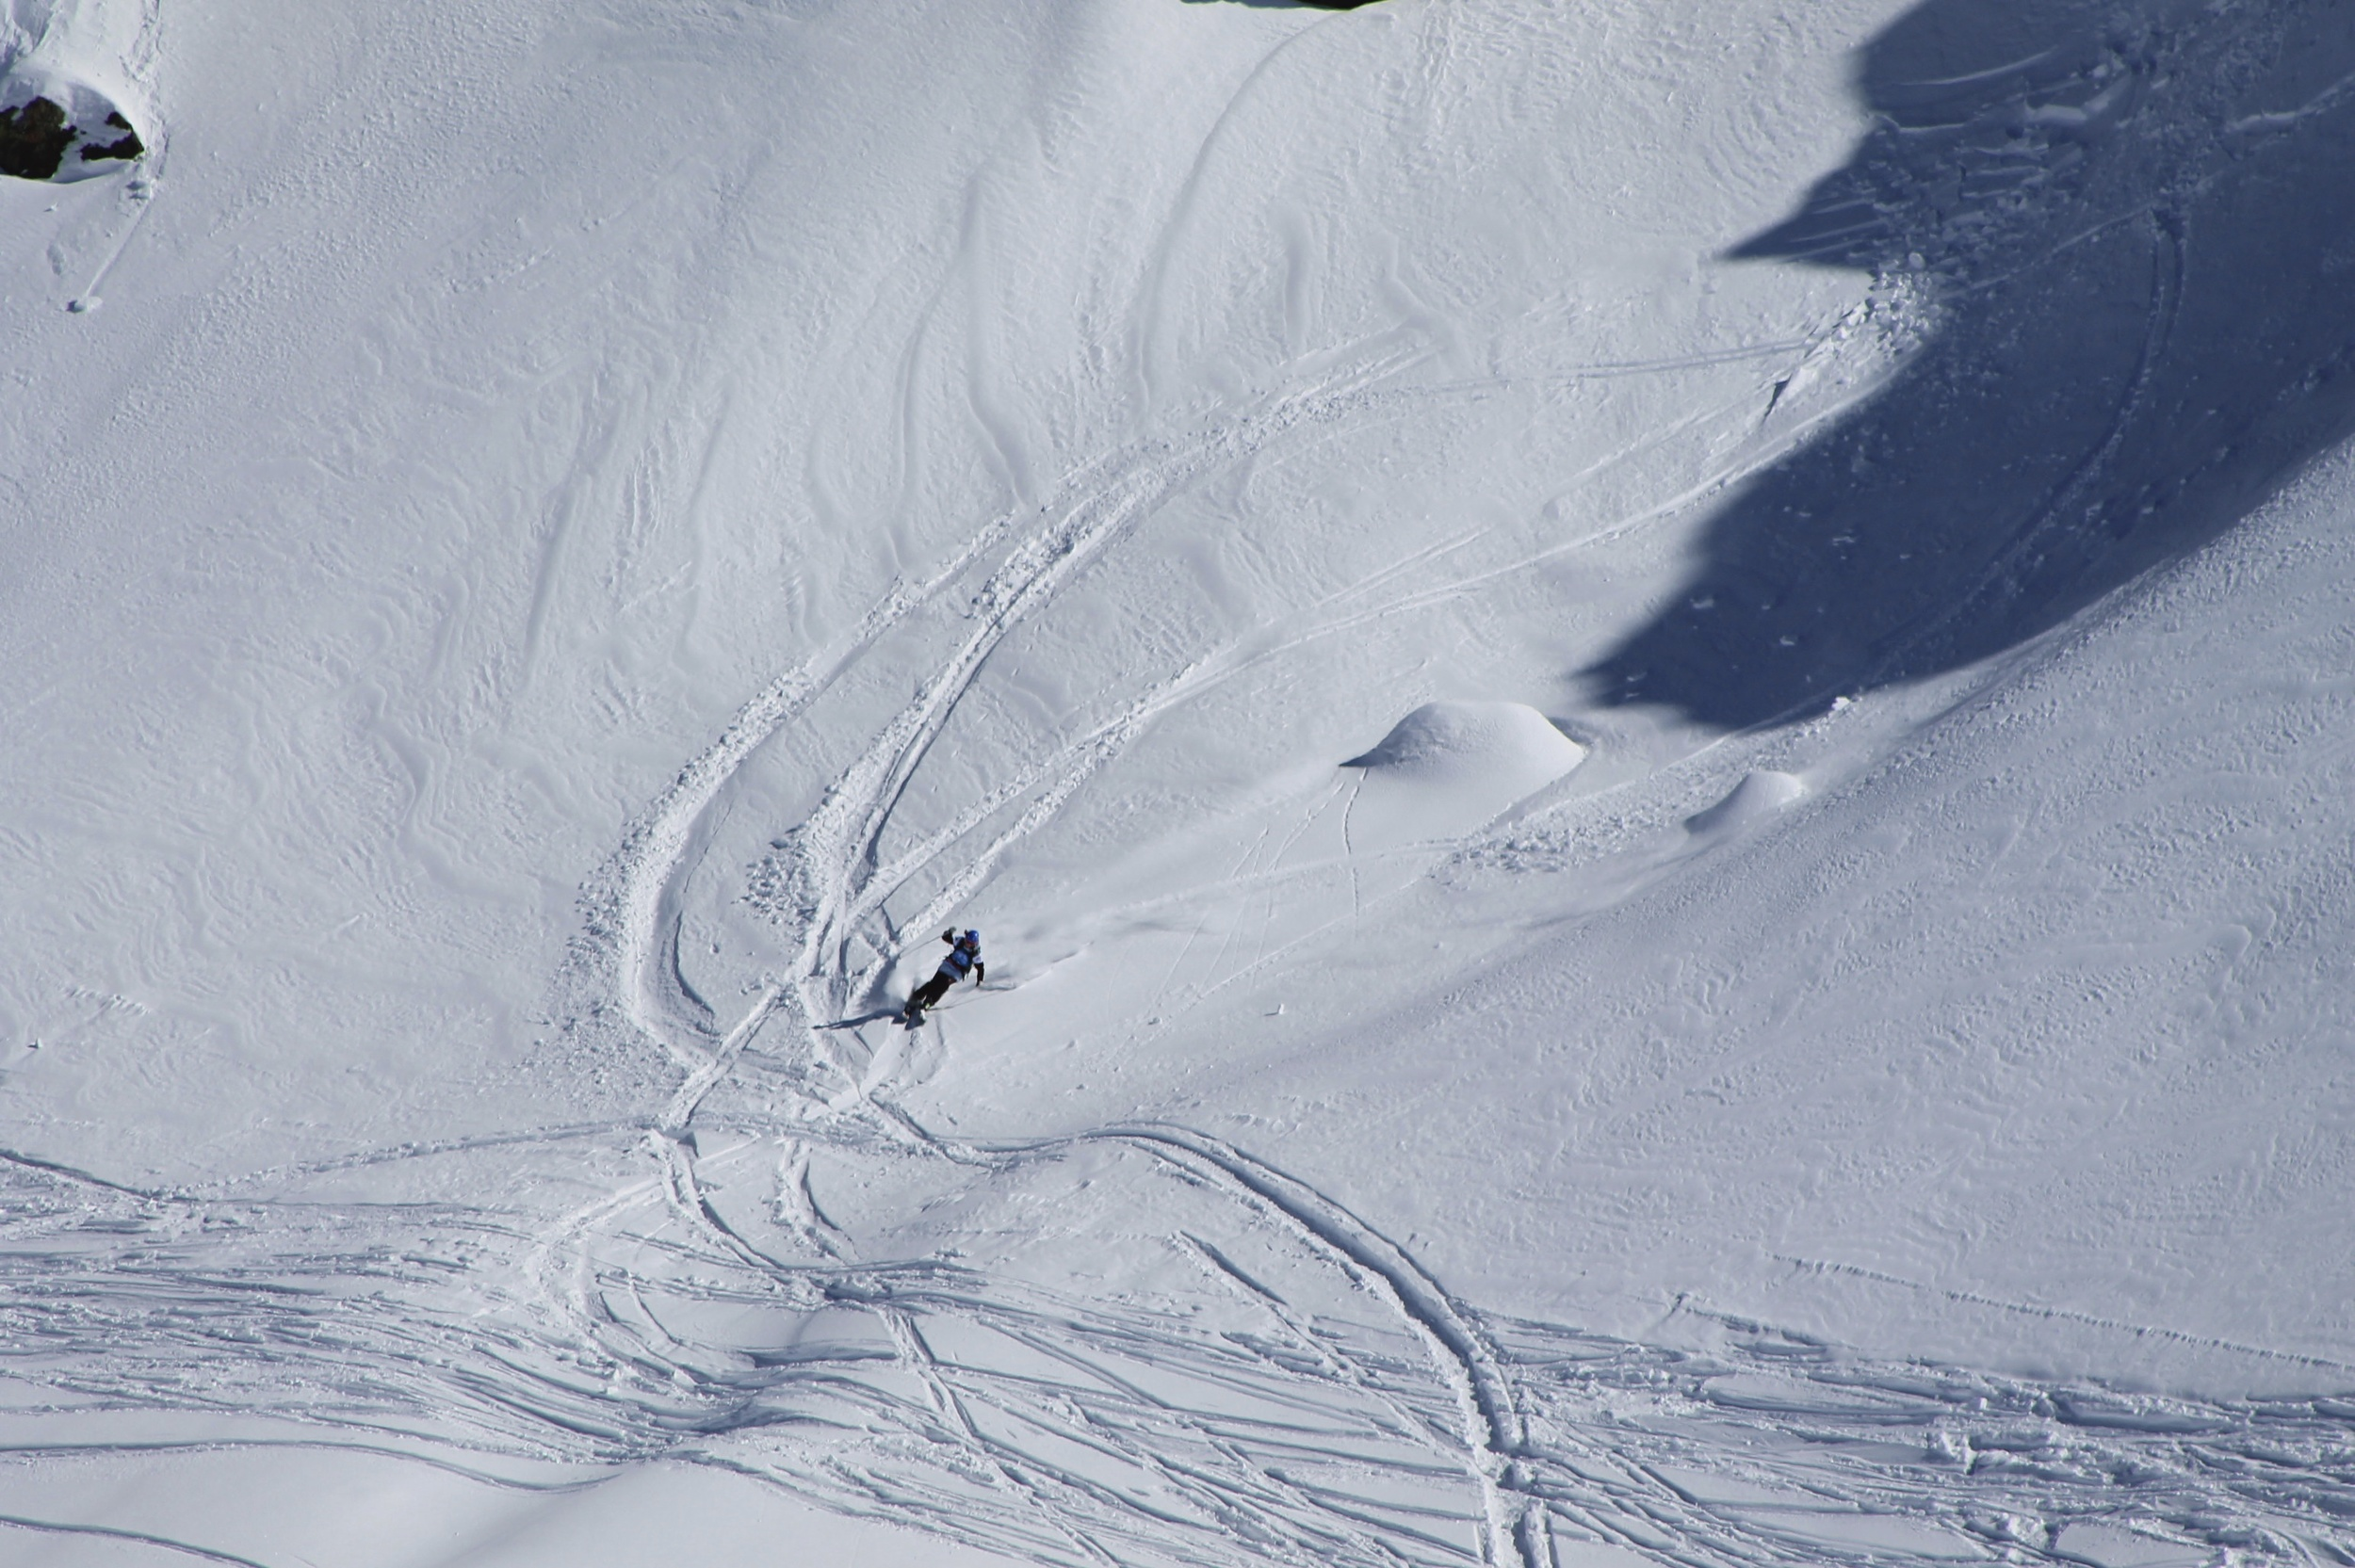 Can't complain though when you get to ski pow!